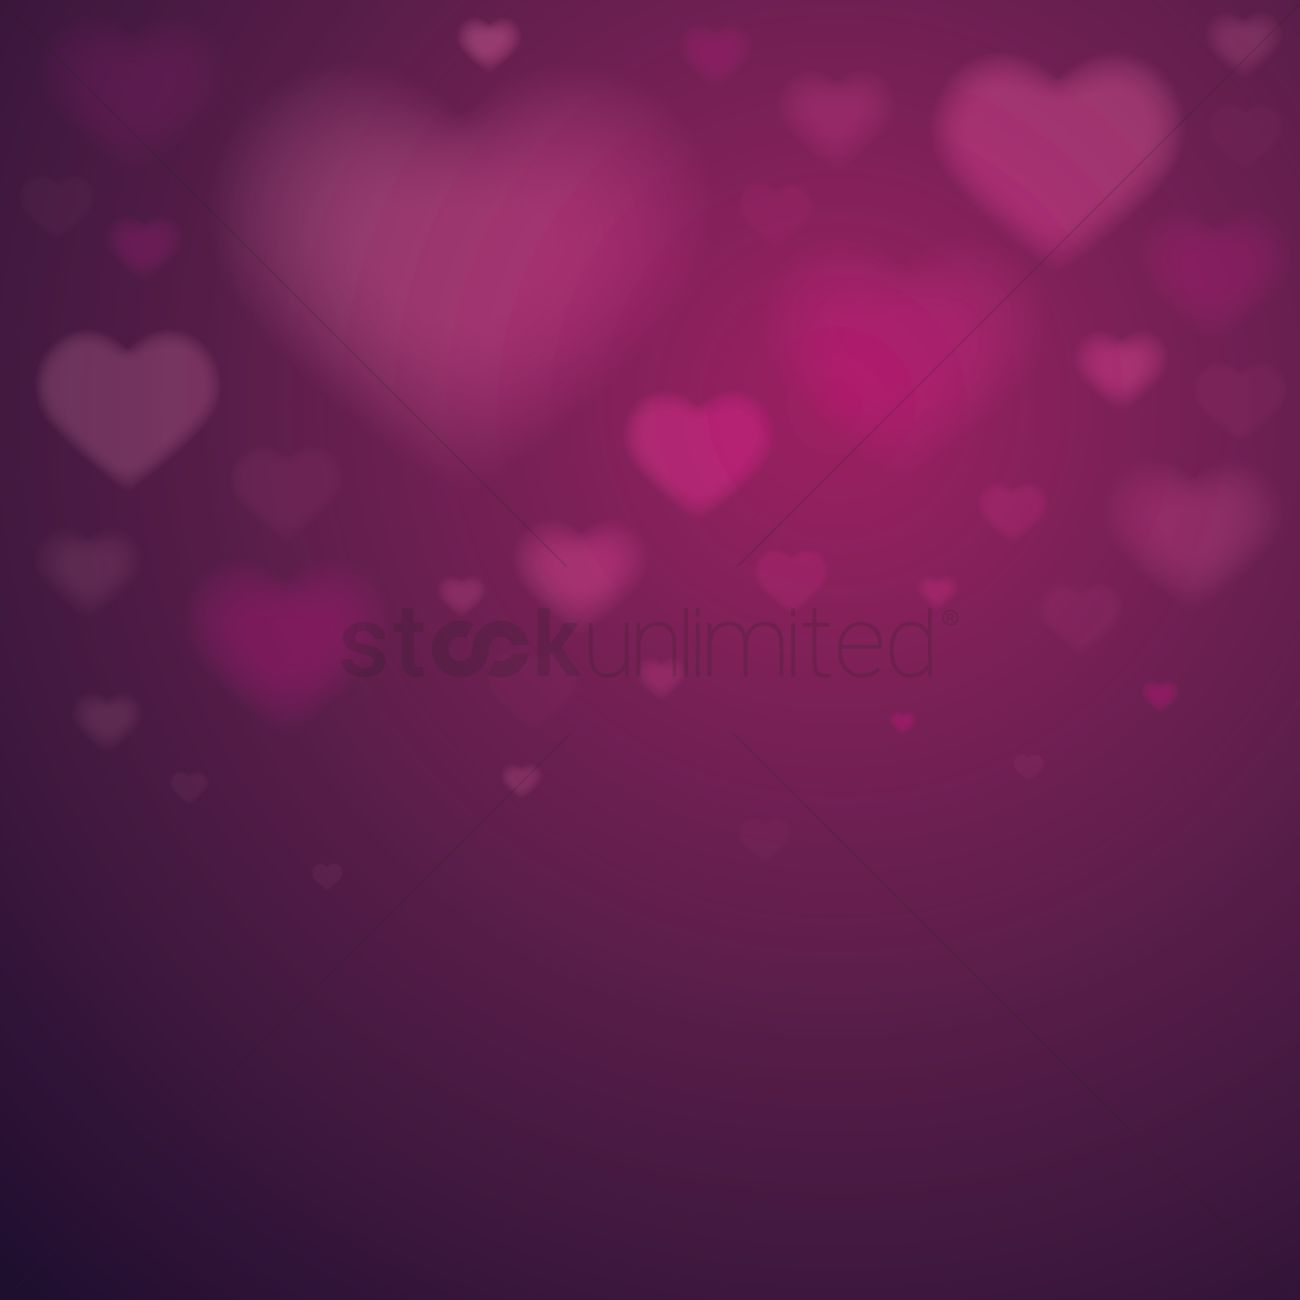 Love Wallpaper Vector Image 1703381 Stockunlimited